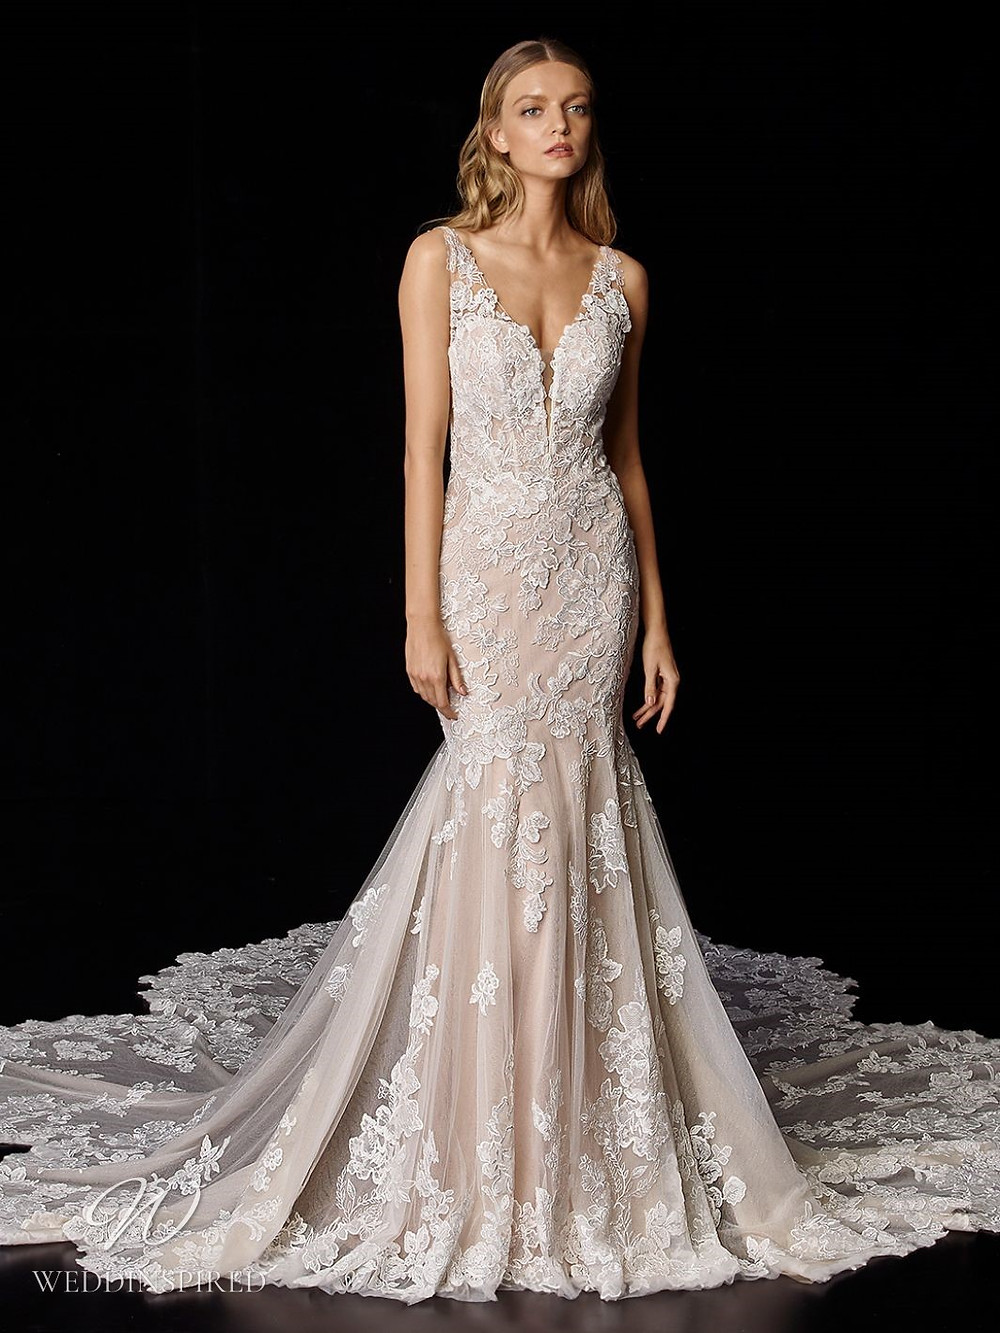 An Enzoani romantic blush lace mermaid wedding dress with a long lace illusion train